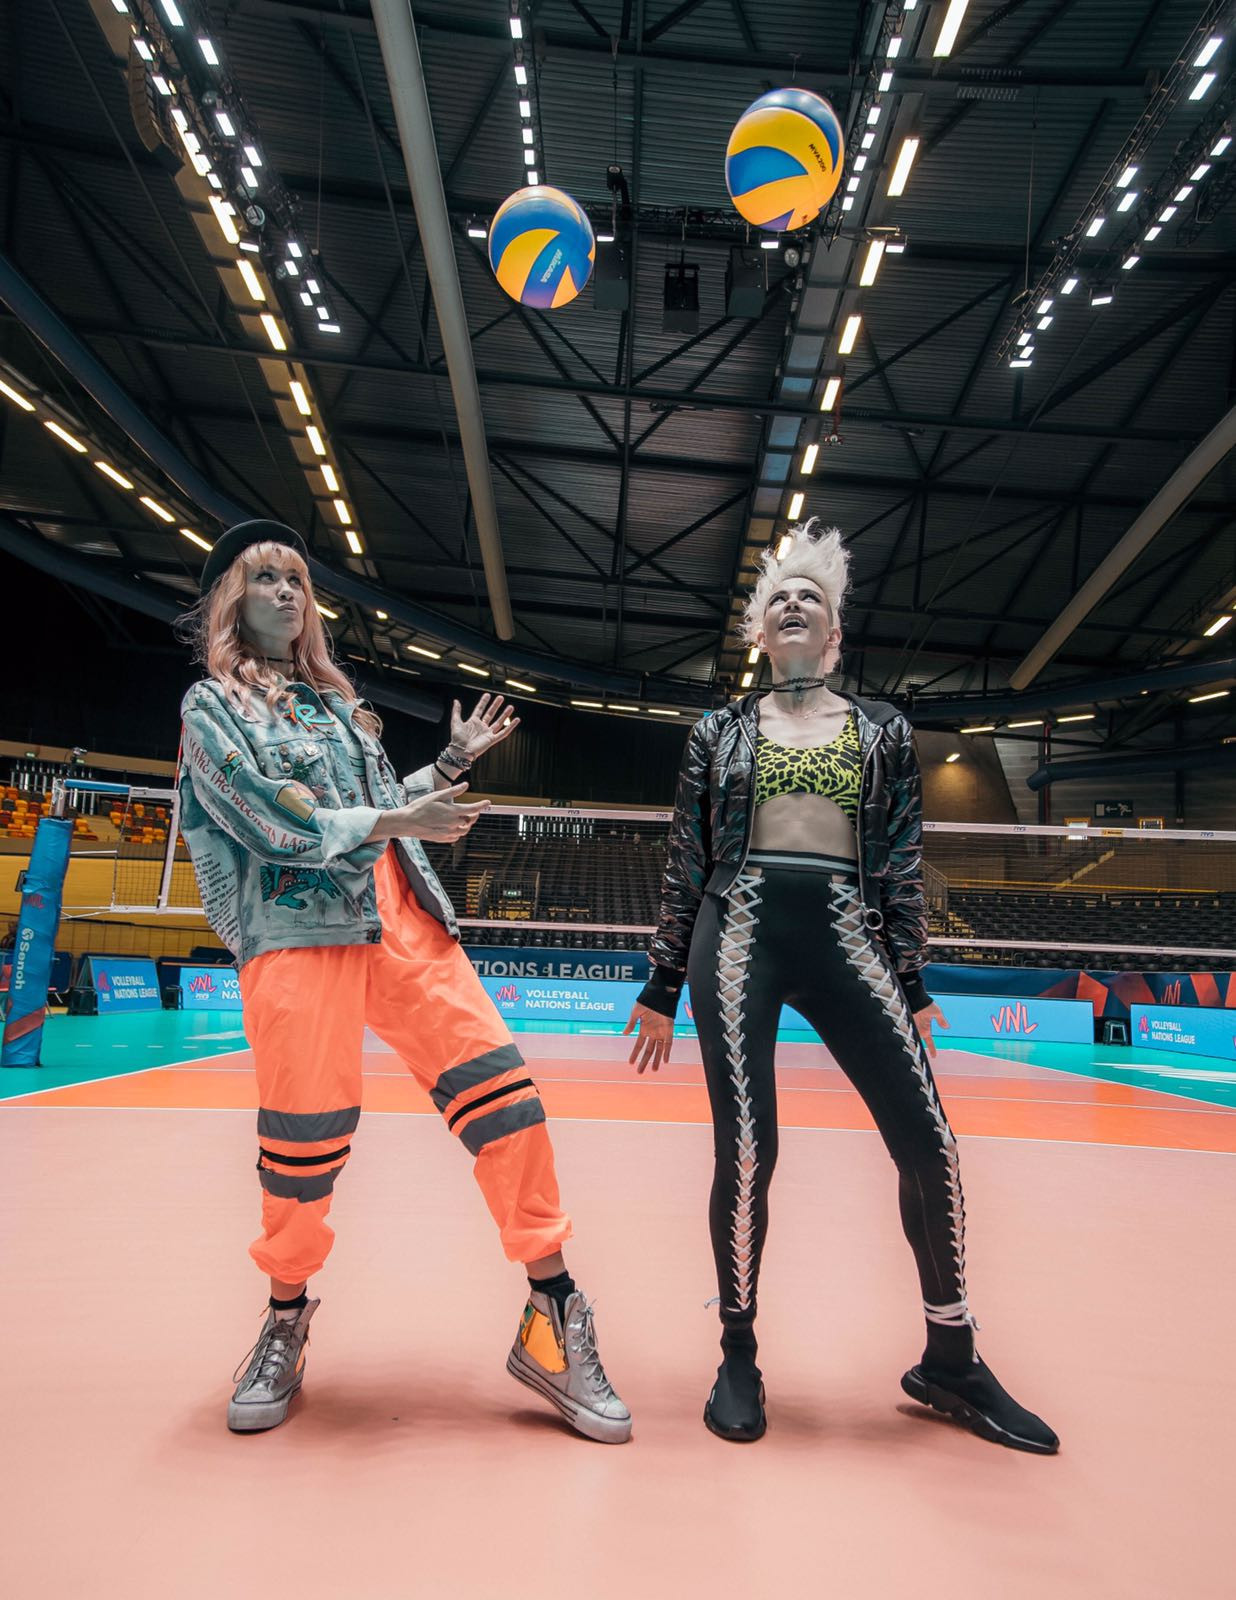 Volleyball Nations League team up with award winning DJ duo NERVO to improve fan experience